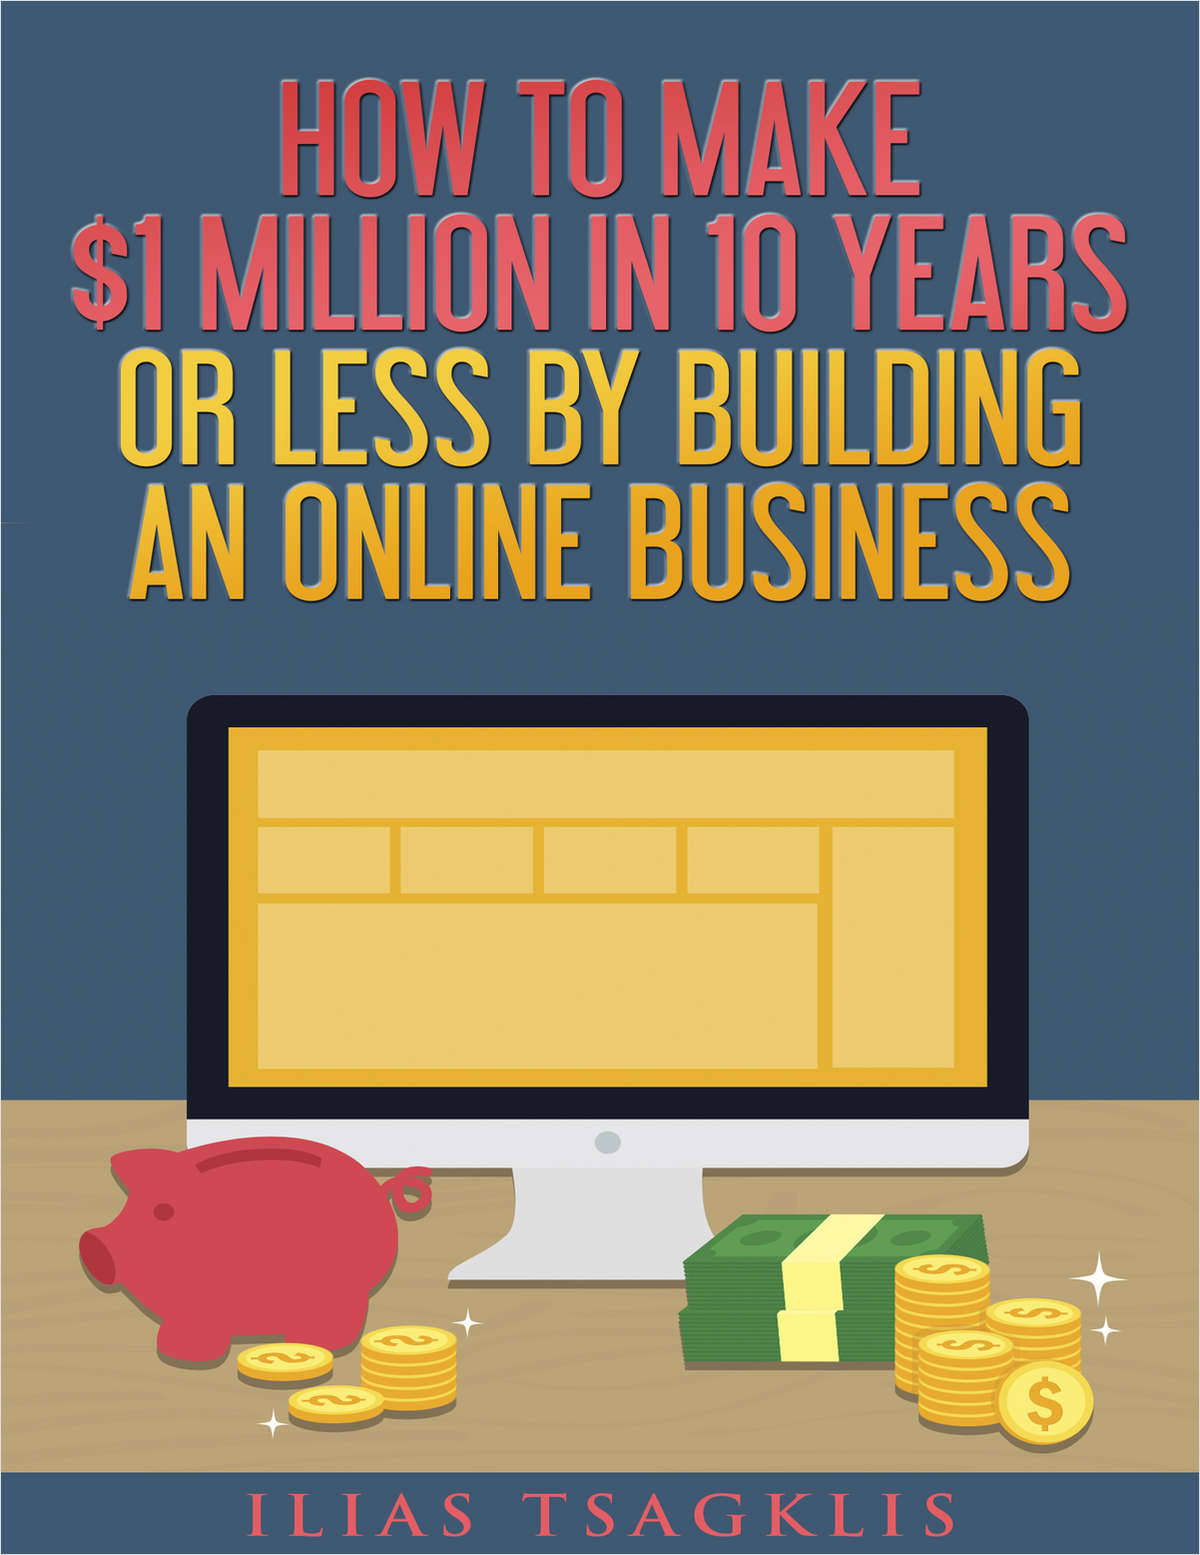 How to Make $1 Million in 10 Years or Less by Building an Online Business